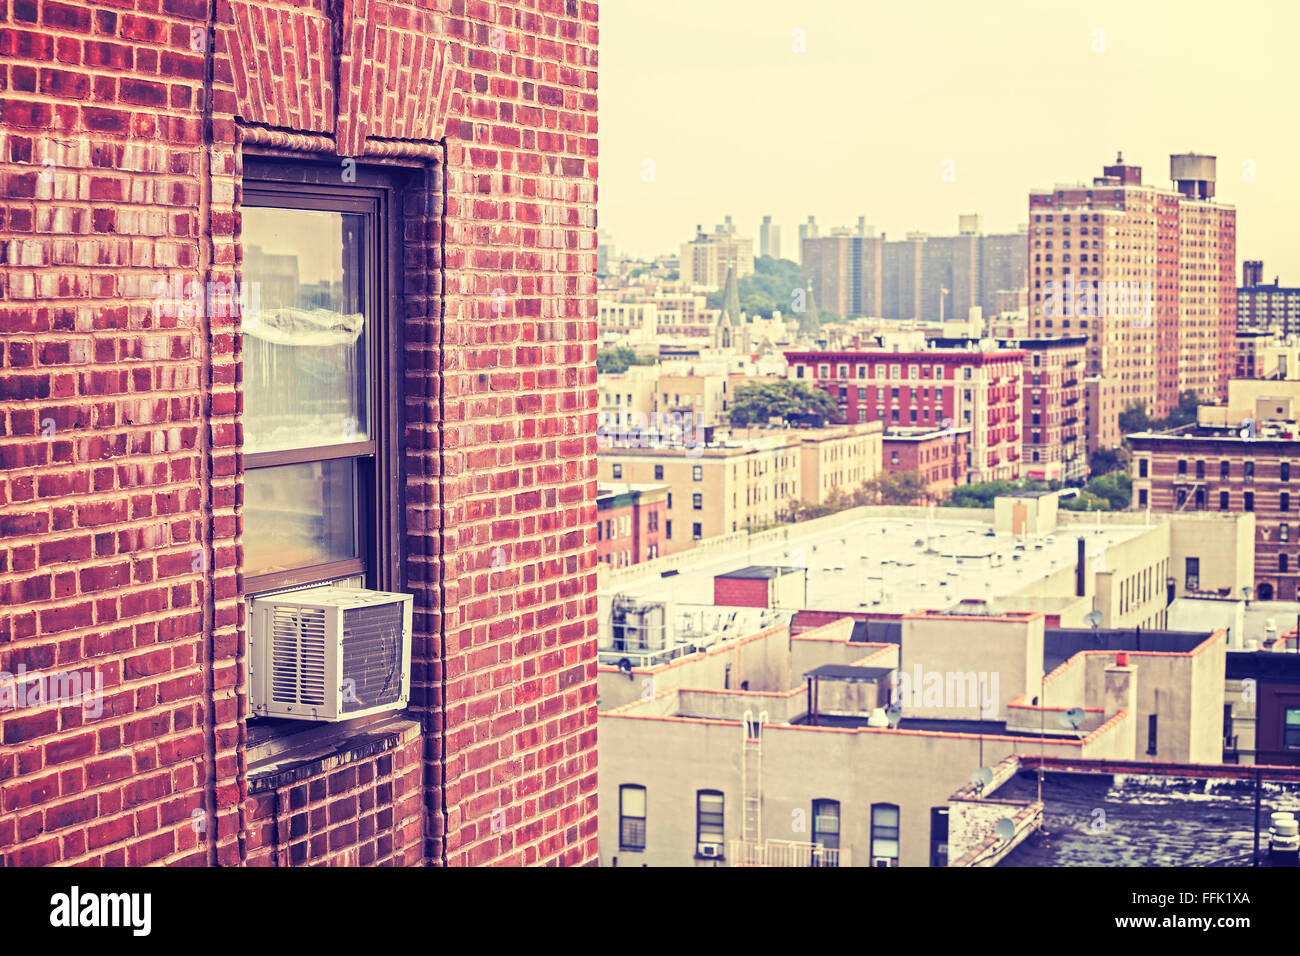 Vintage toned window with external air conditioner unit, Harlem, USA. - Stock Image